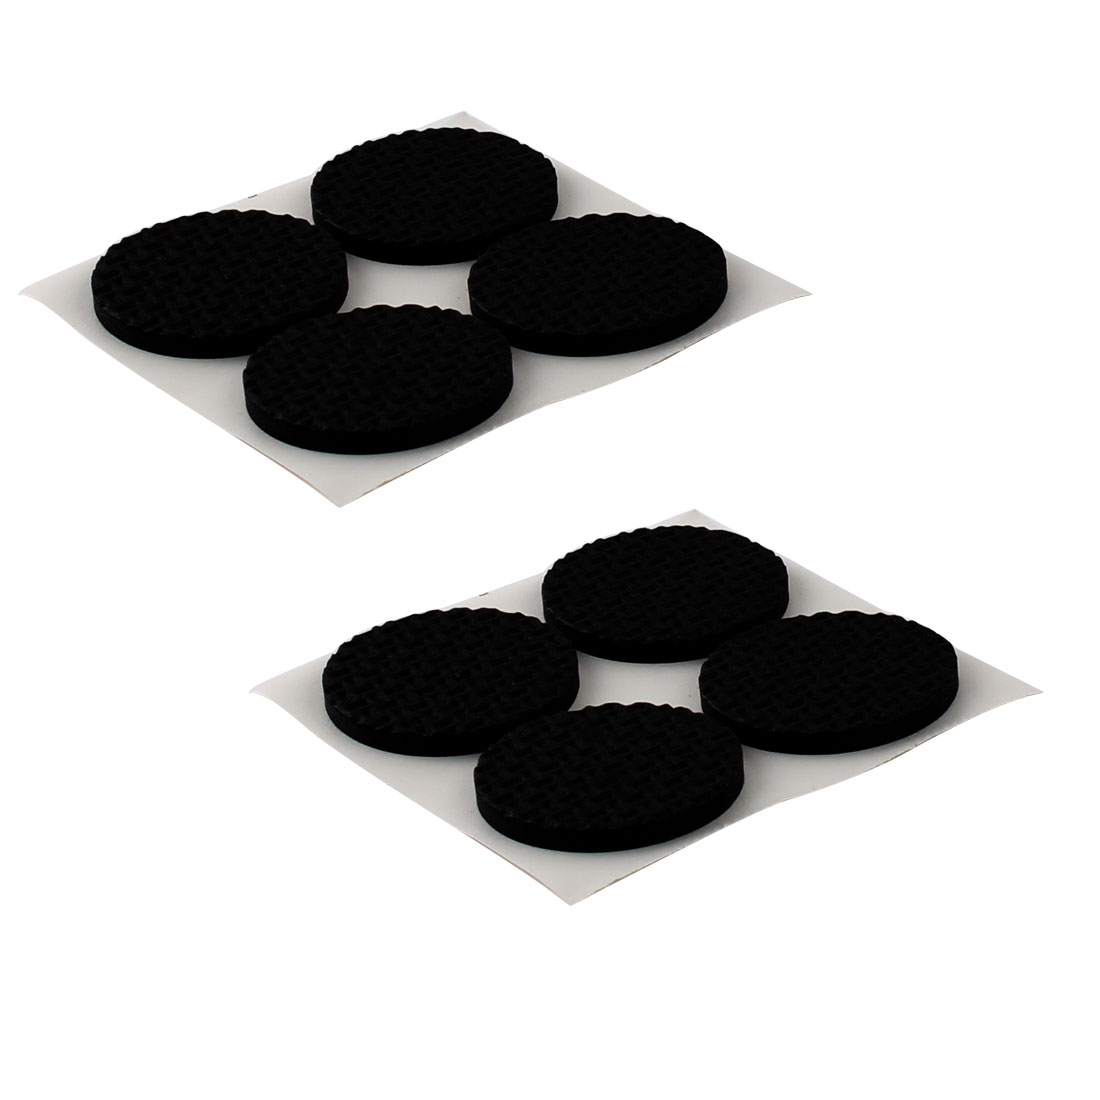 Office Round EVA Anti Slip Self Adhesive Furniture Foot Pads Cushions Black 38mm Dia 8pcs